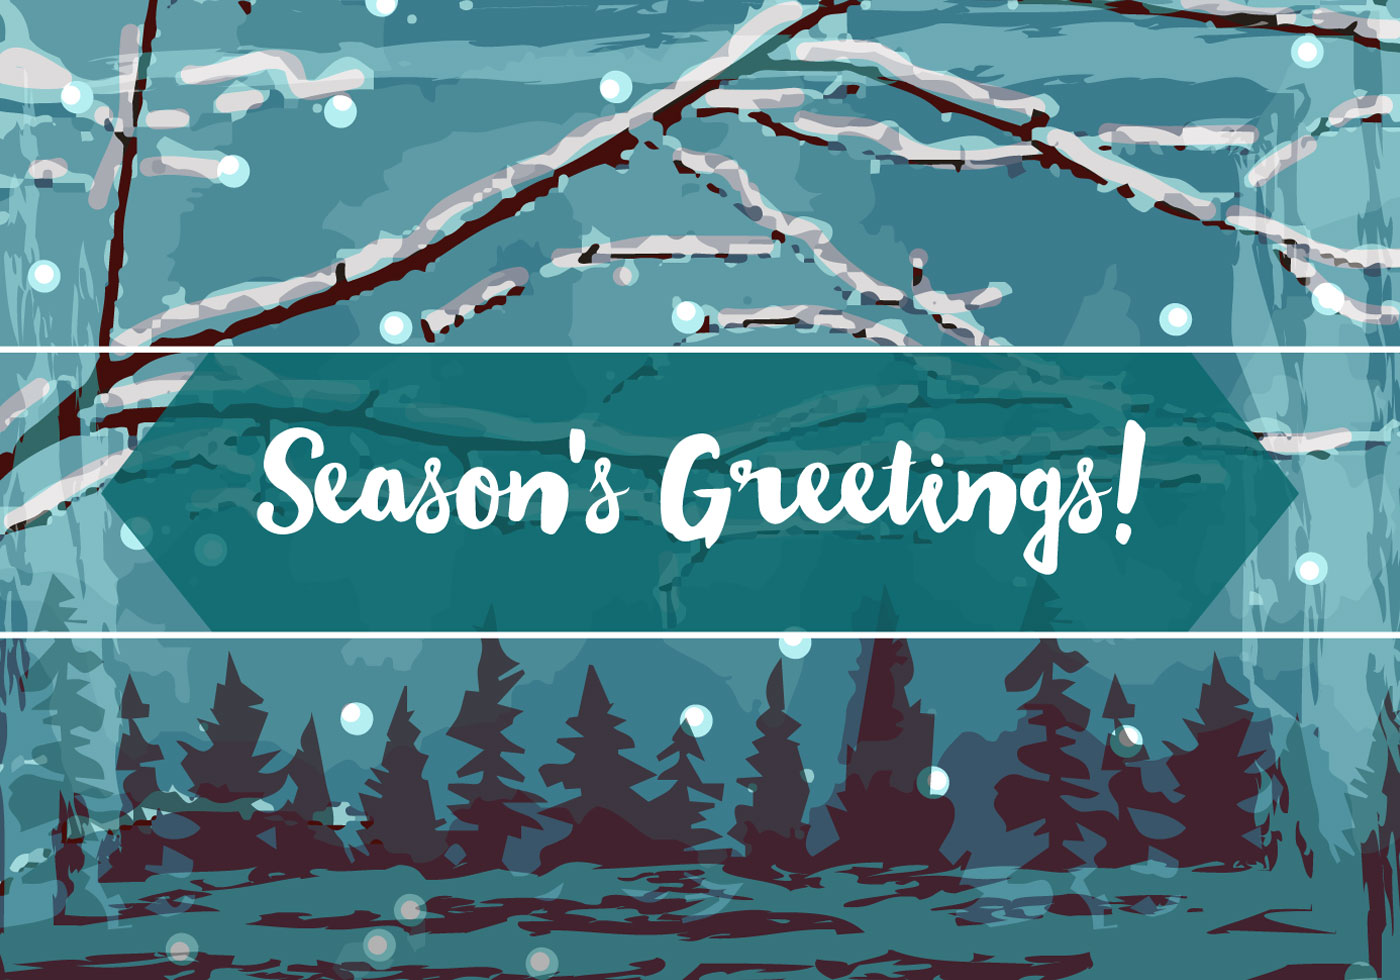 Season greetings vector background download free vector art stock season greetings vector background download free vector art stock graphics images m4hsunfo